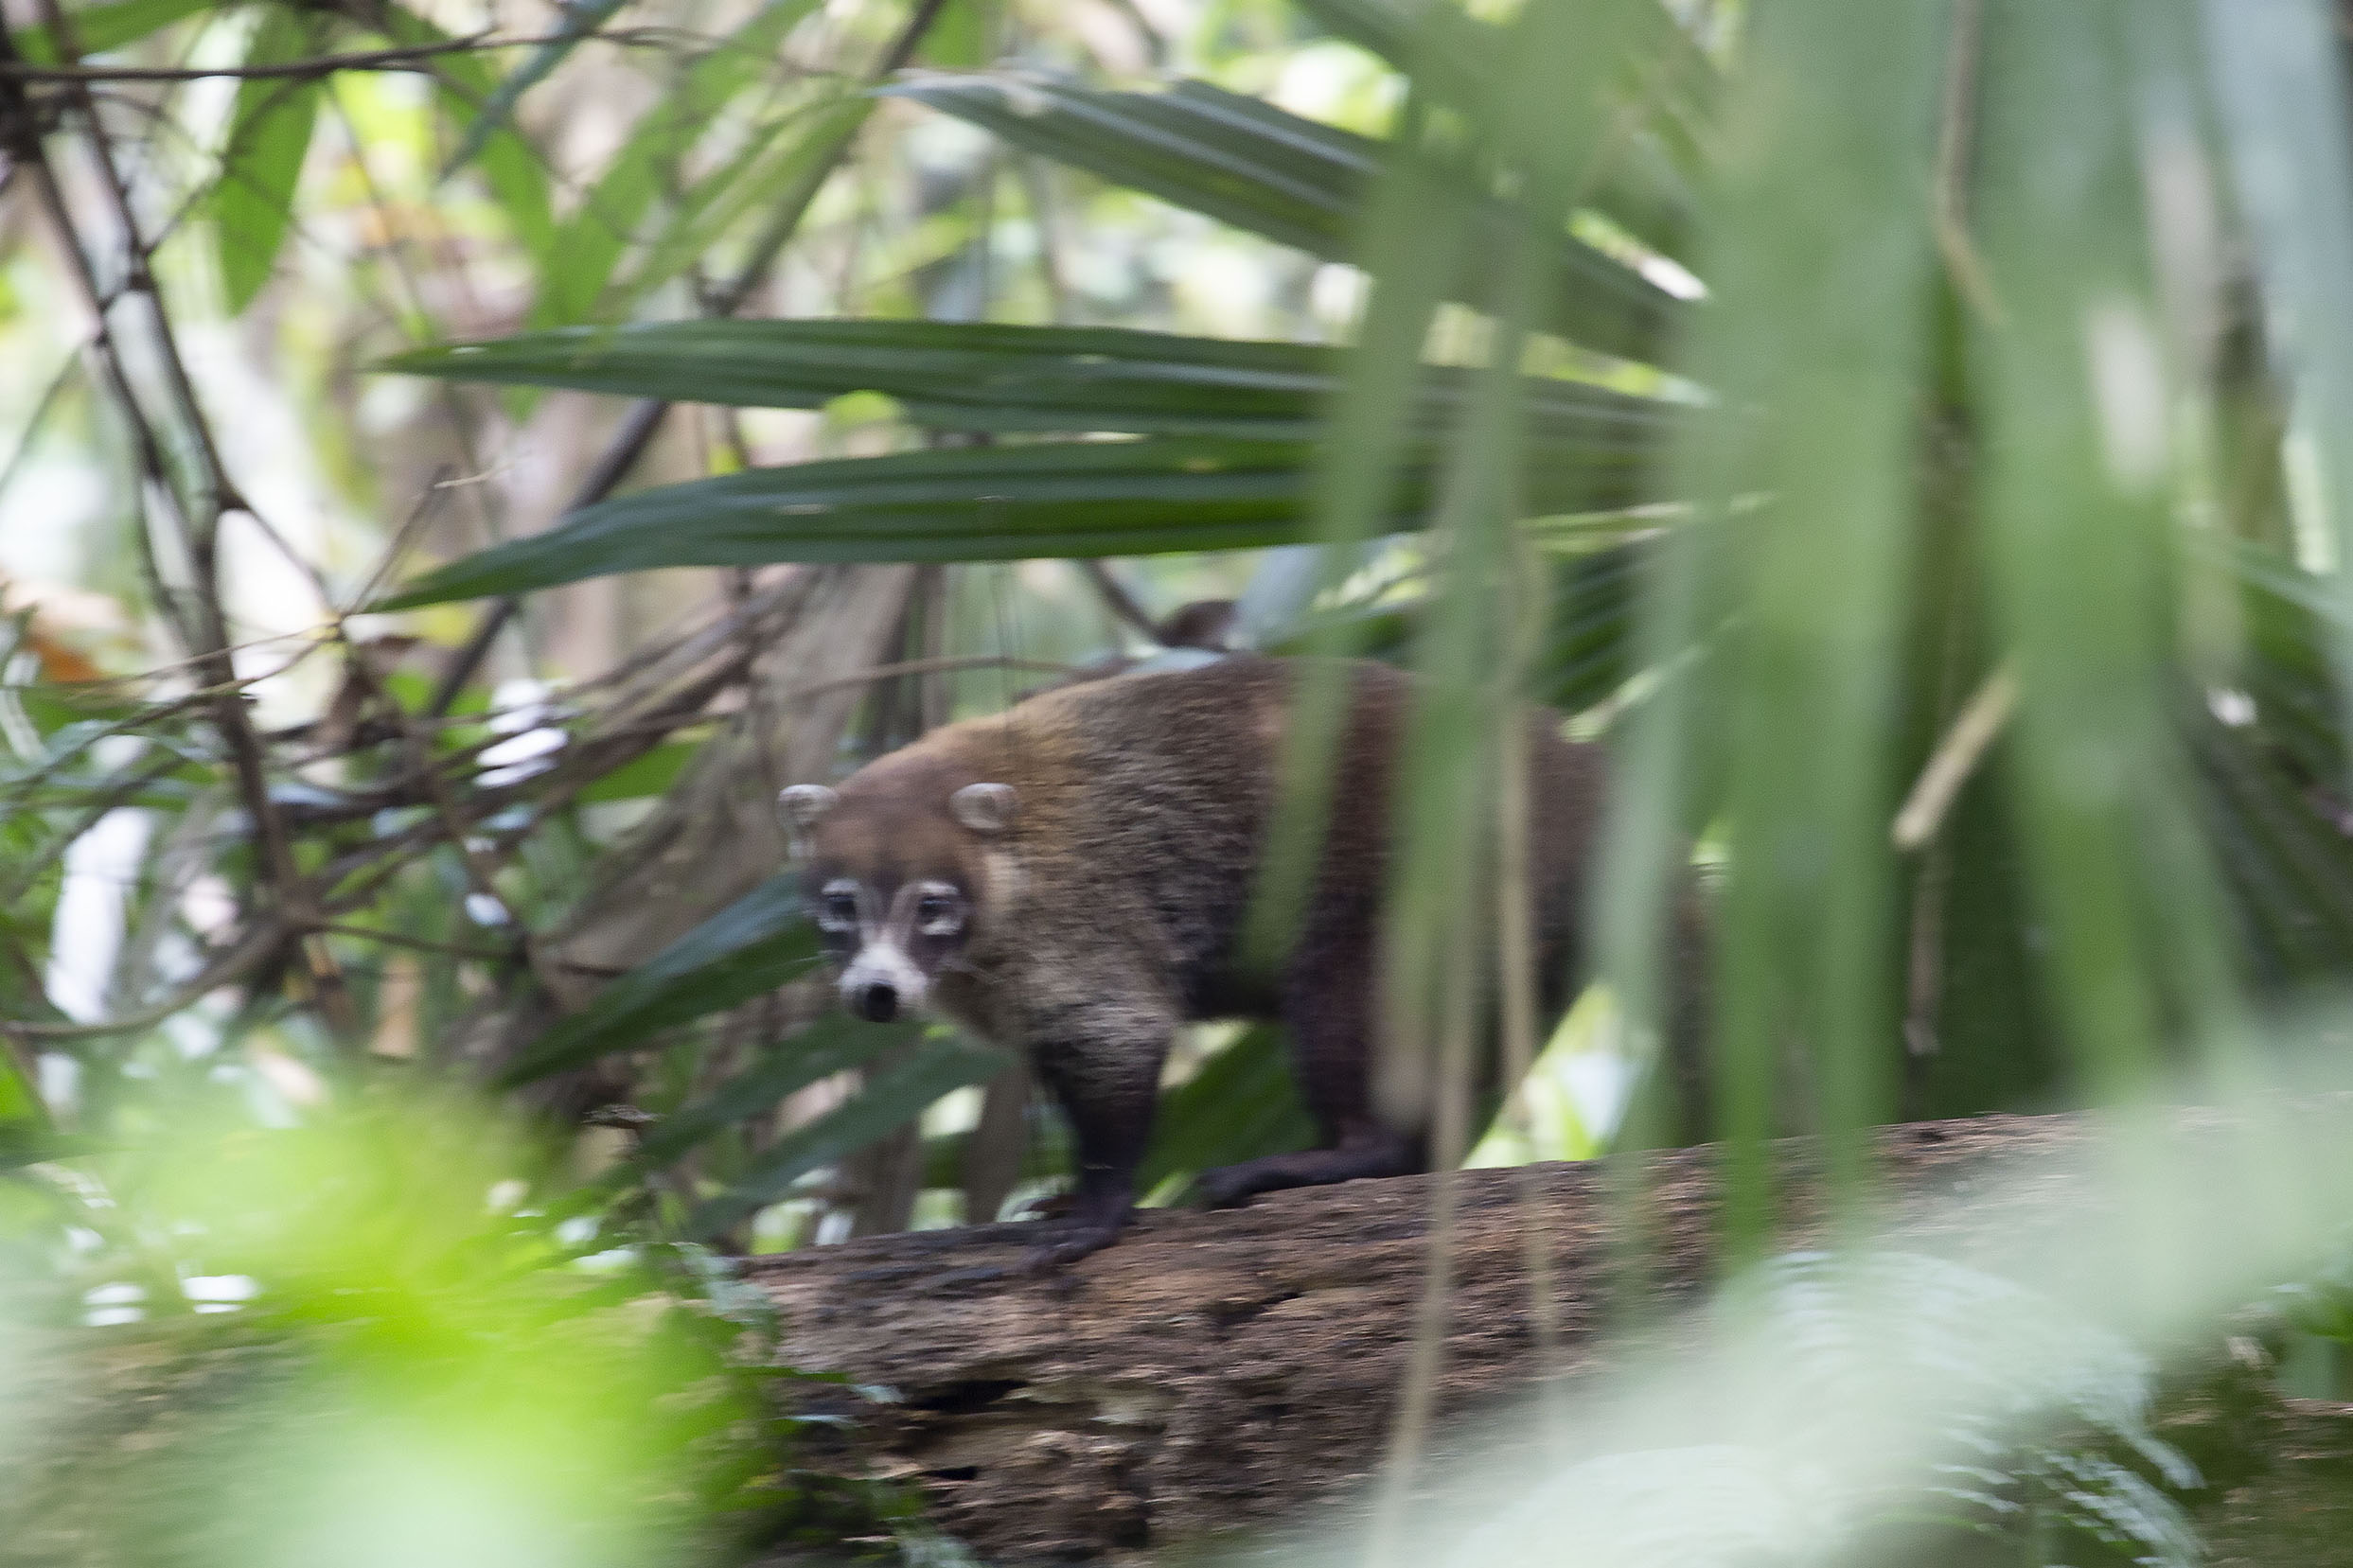 Picture of White-nosed coati in the forest of Soberanía NP - Panama - Americas